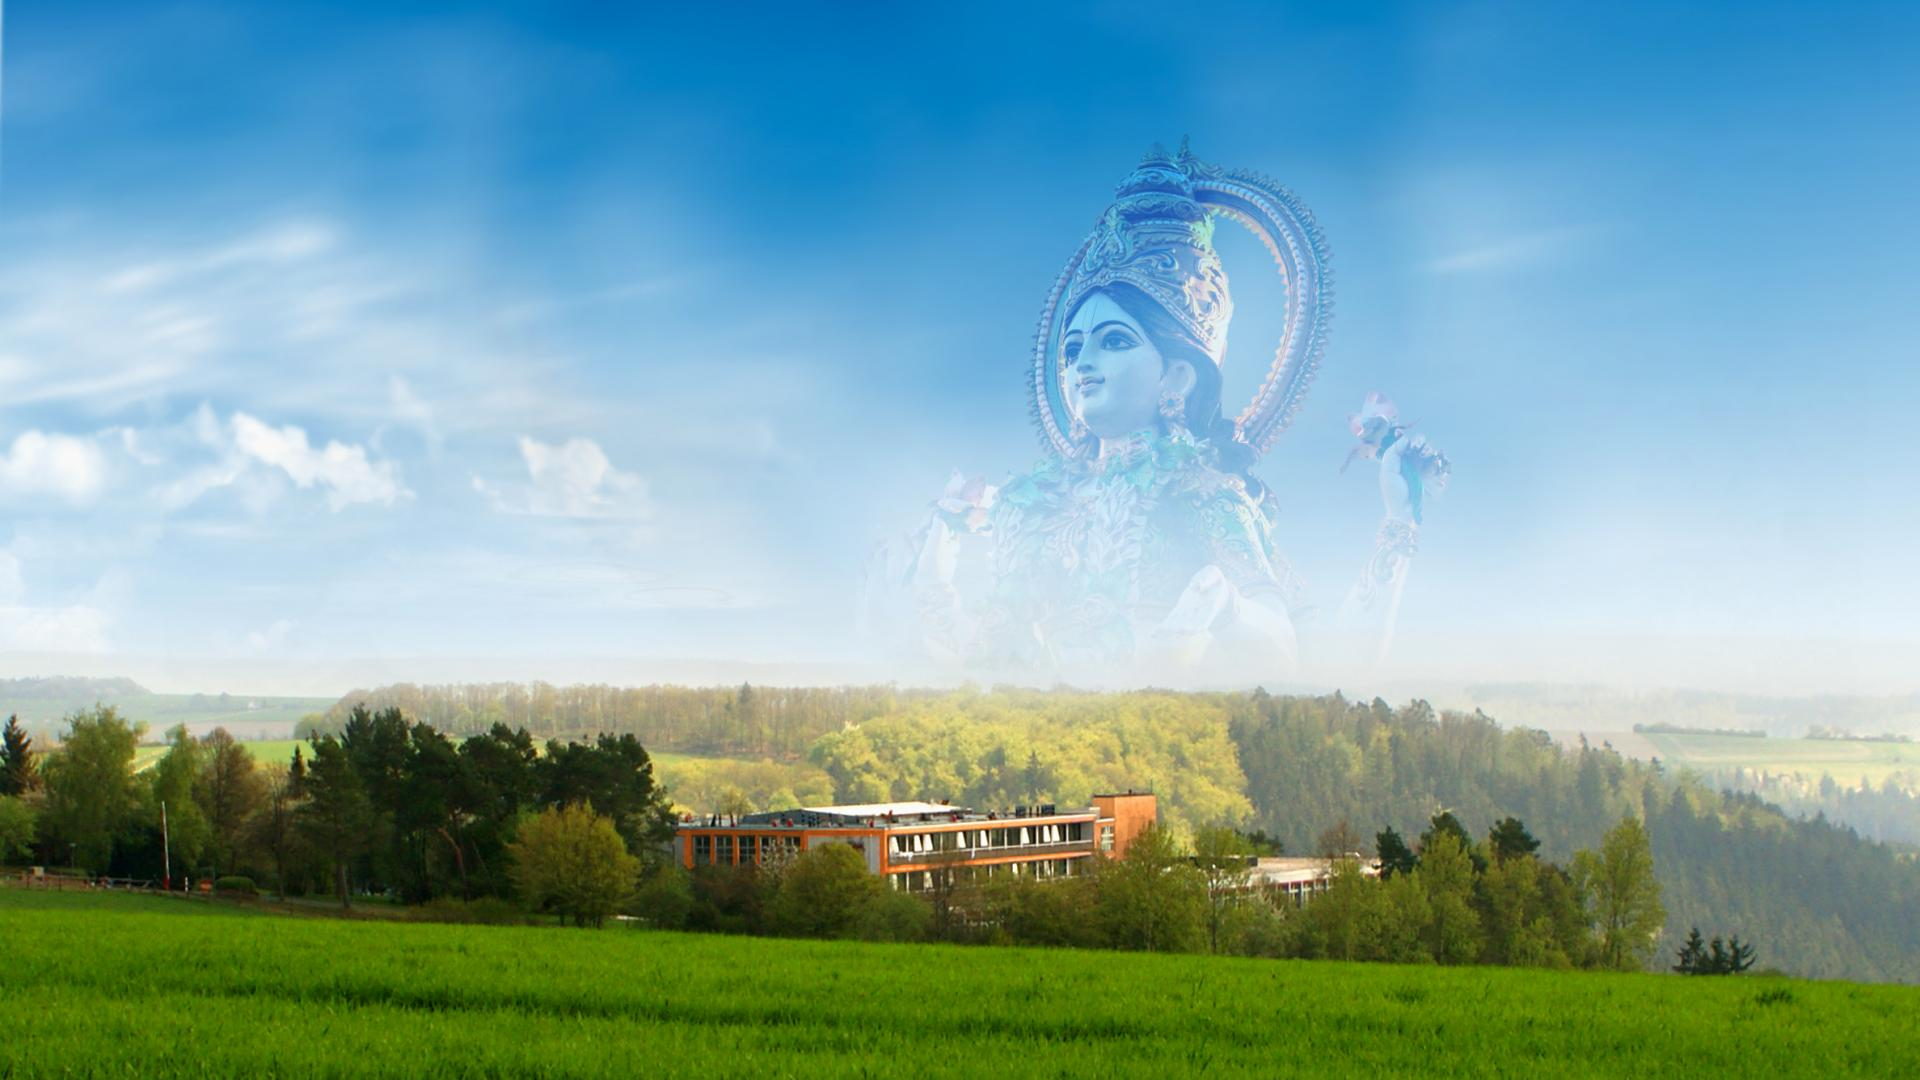 Ashram, Valley and Lakshmi - Shree Peetha Nilaya